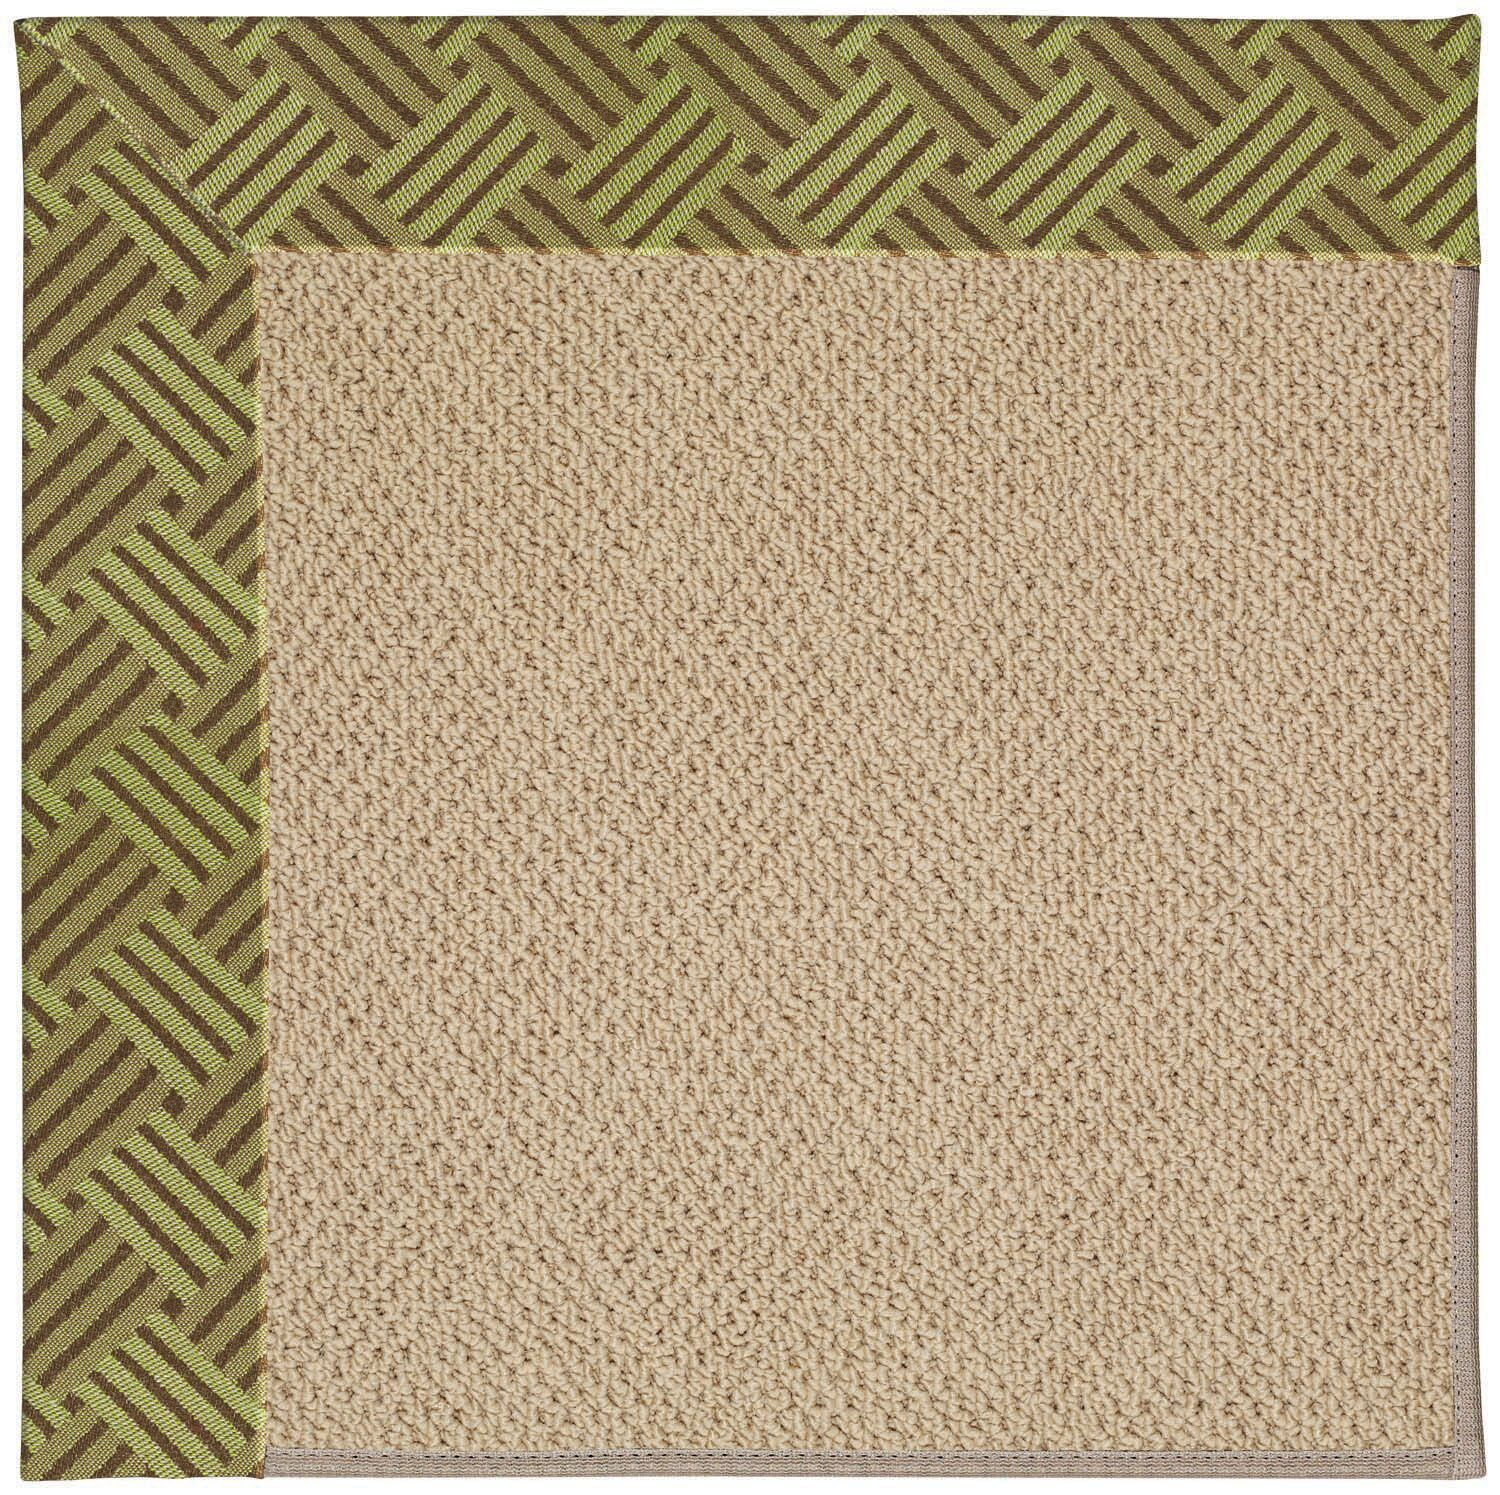 Lisle Machine Tufted Mossy Green/Brown Indoor/Outdoor Area Rug Rug Size: Rectangle 2' x 3'